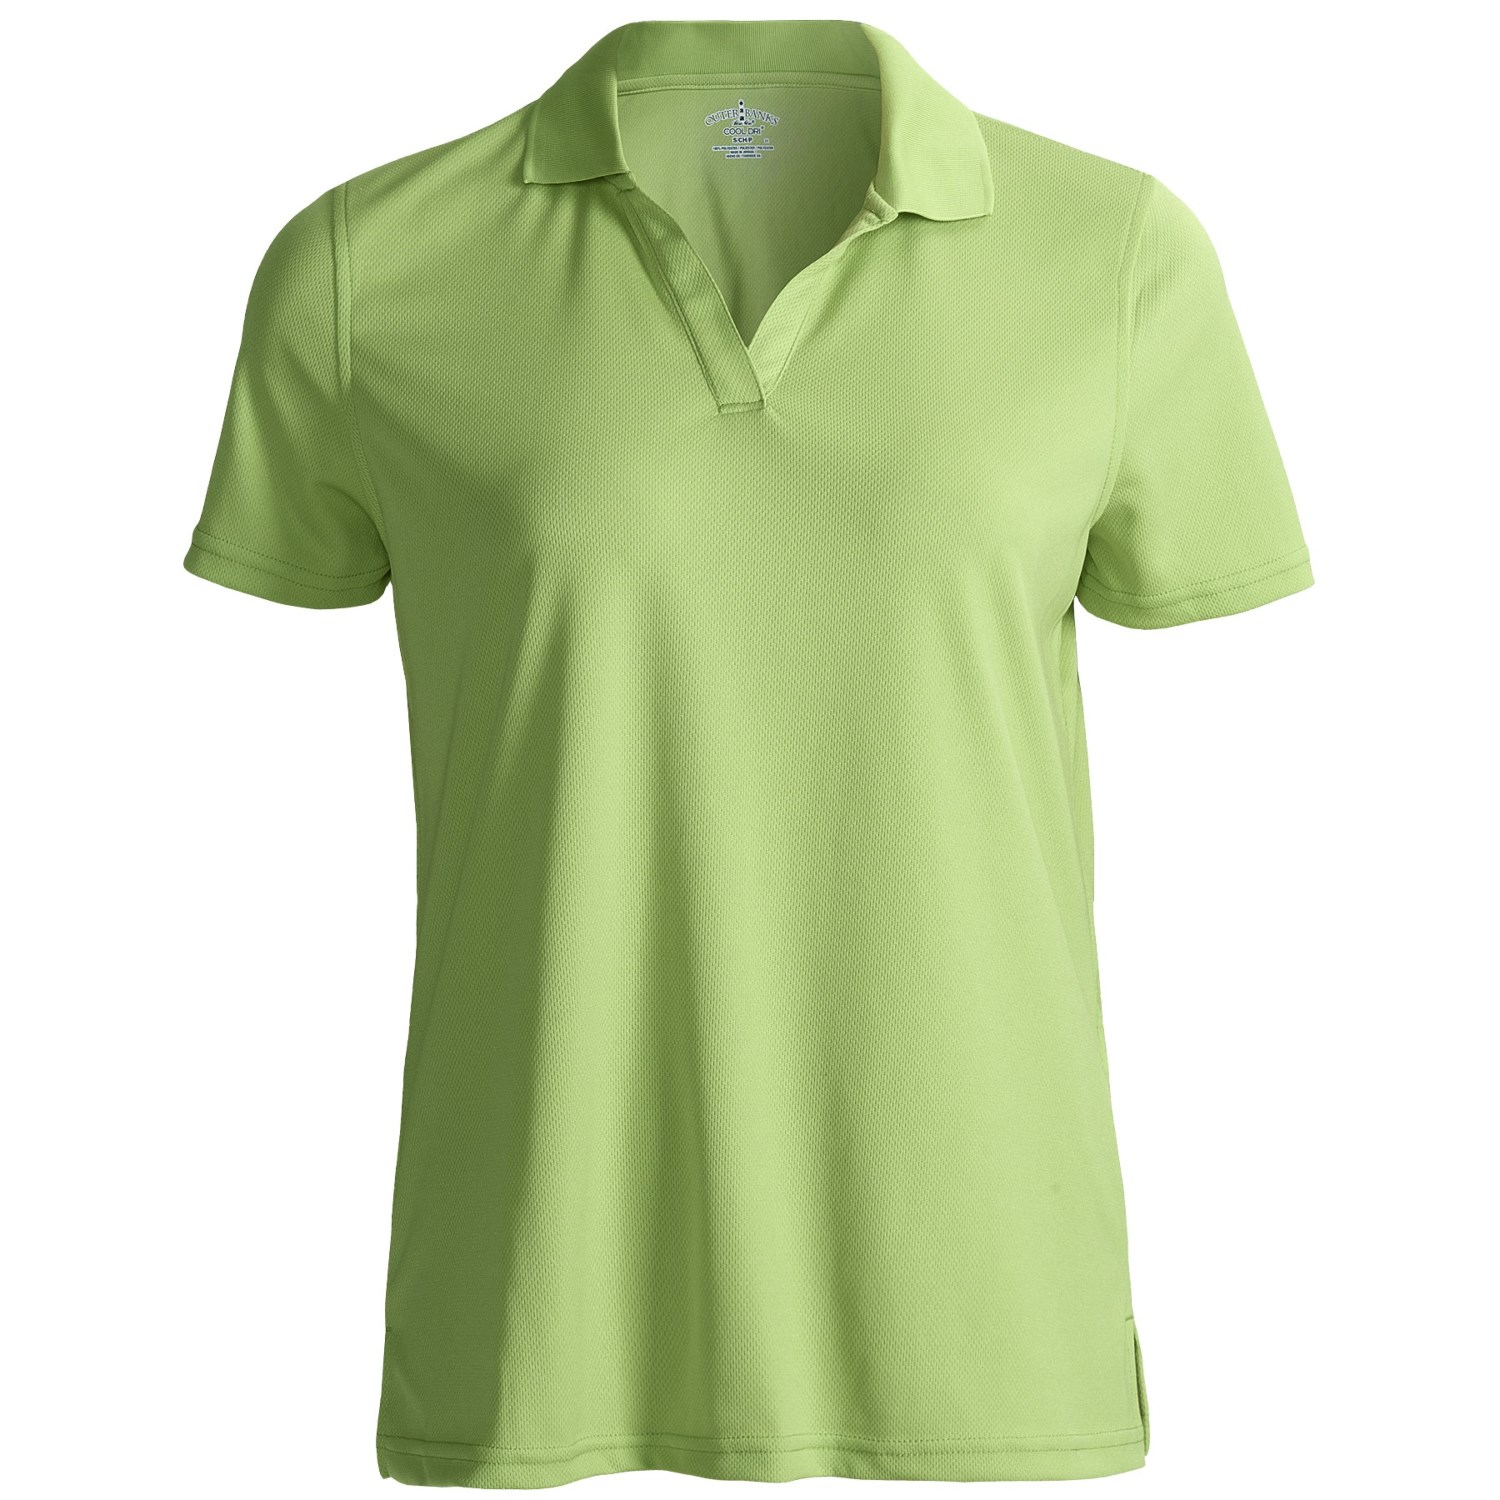 Outer banks cool dri textured performance polo shirt for Cool dri polo shirts